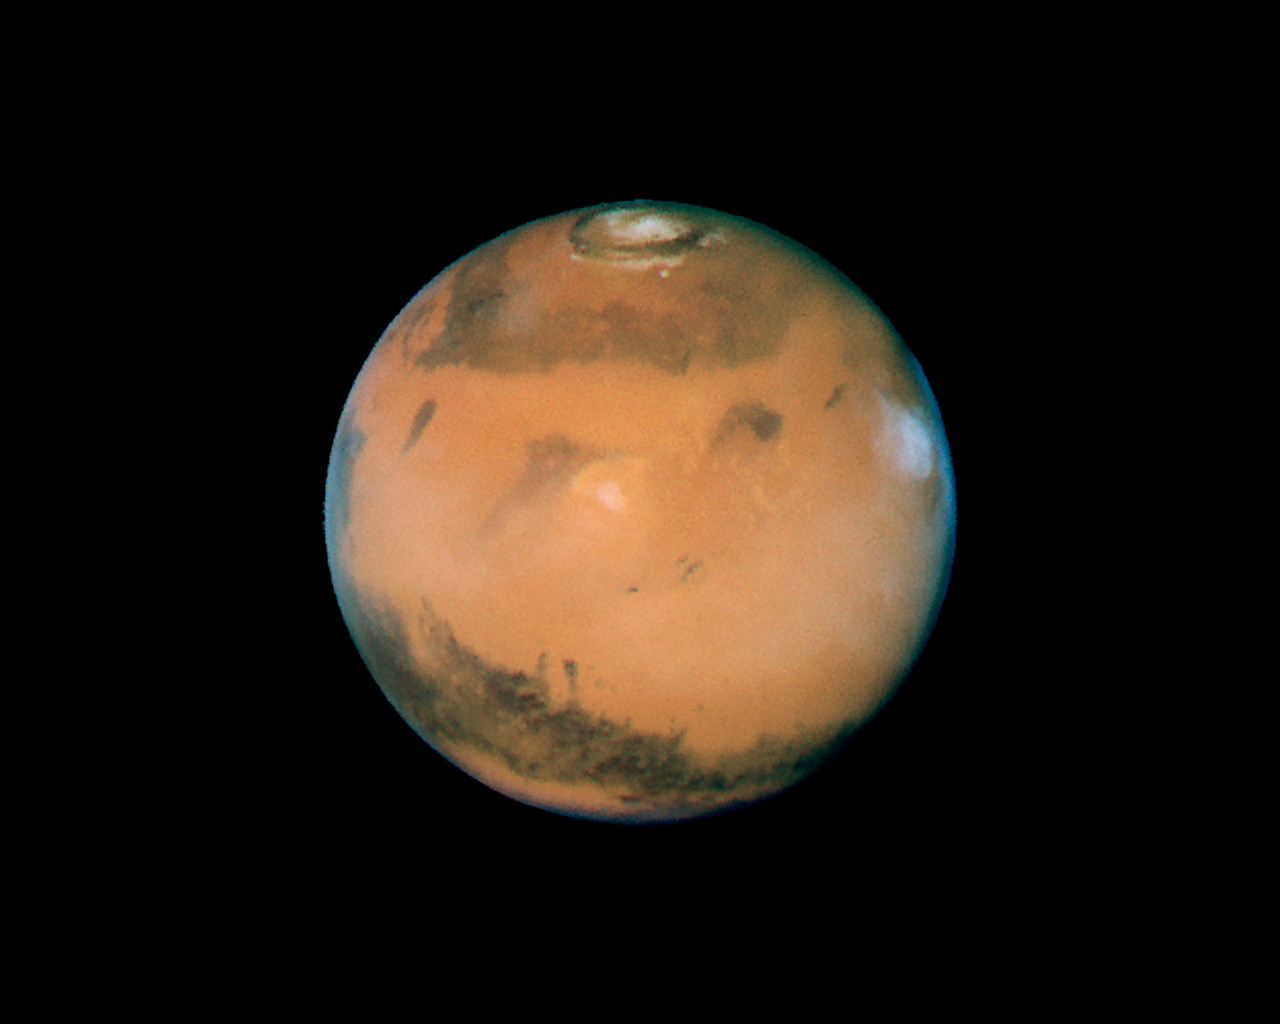 hubble images of mars - photo #23